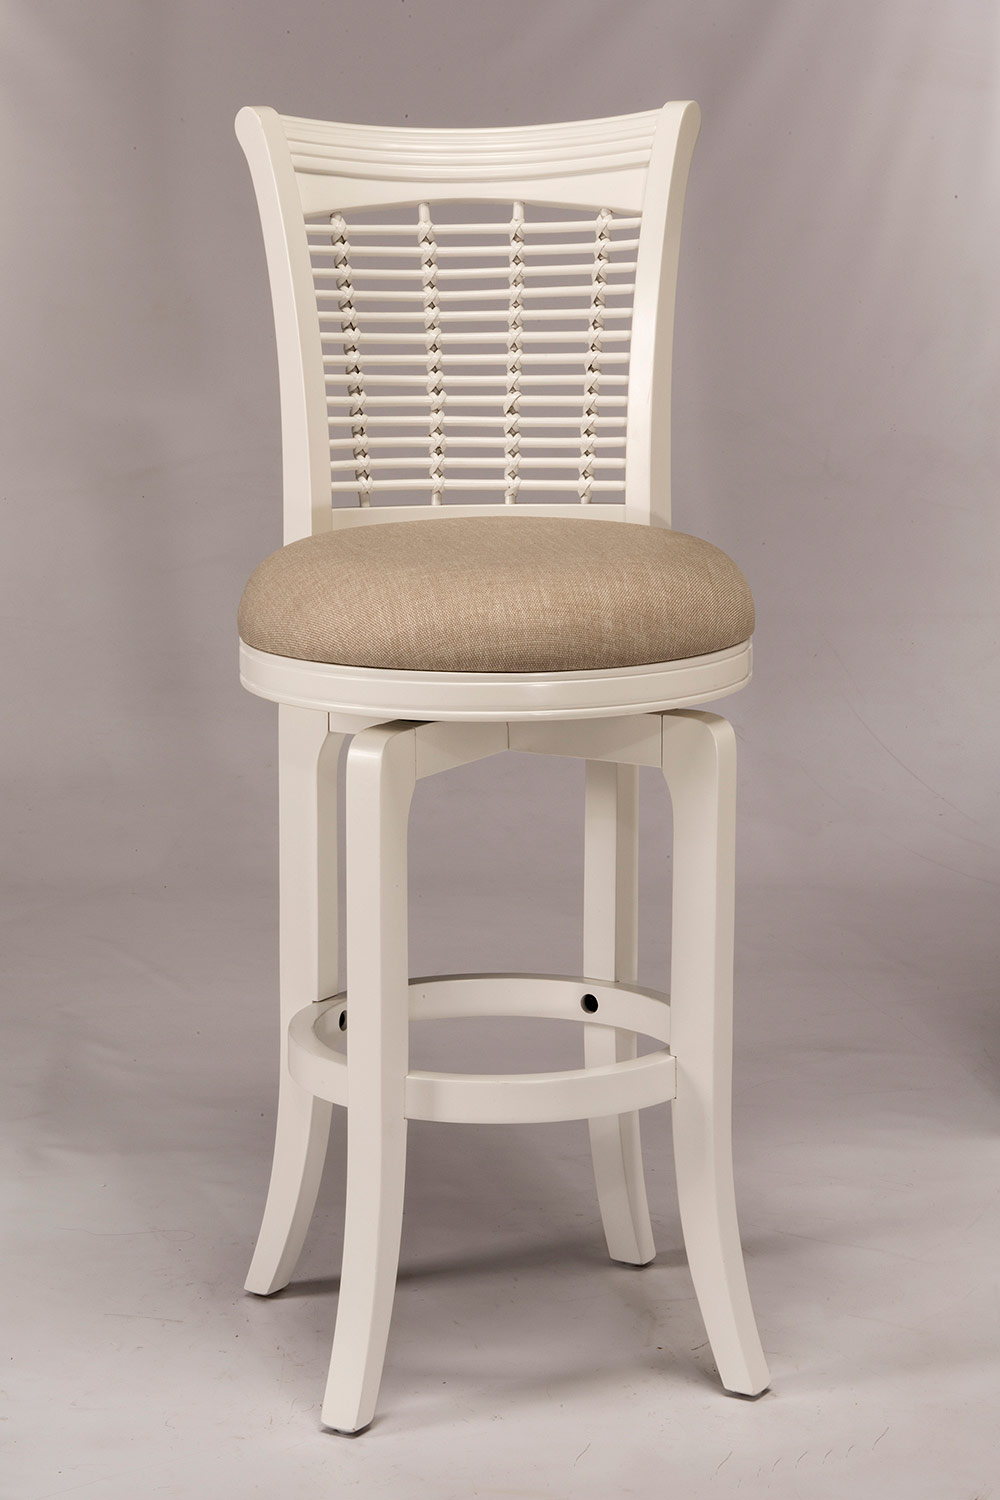 Hillsdale Bayberry Swivel Counter Stool - White